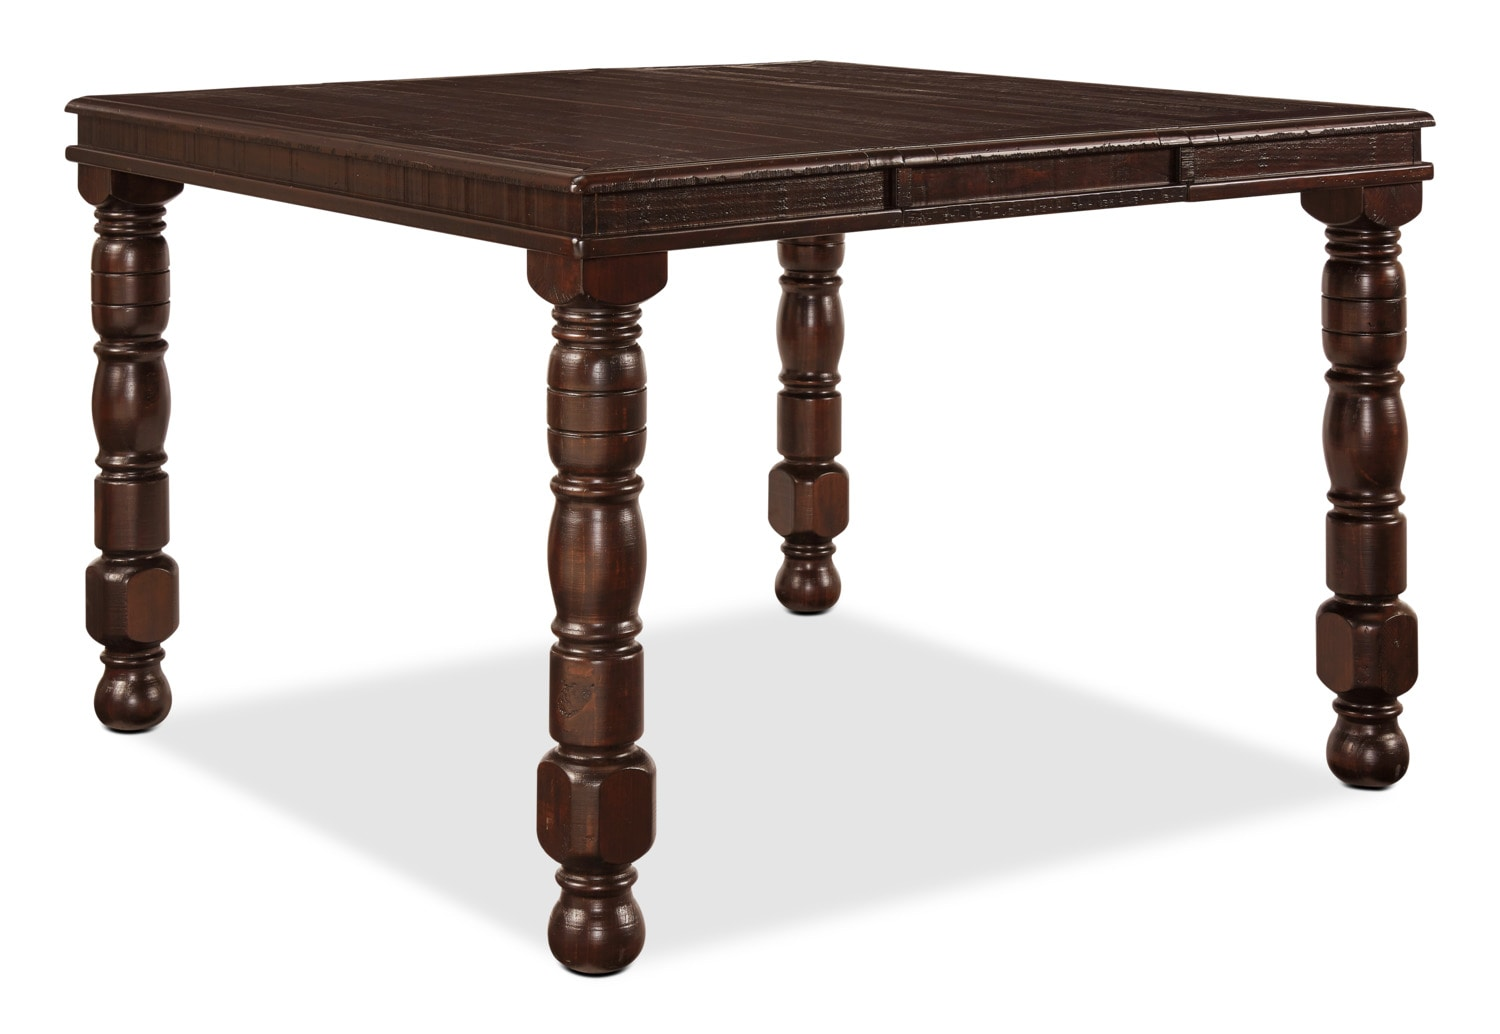 Gerlane Counter-Height Dining Table